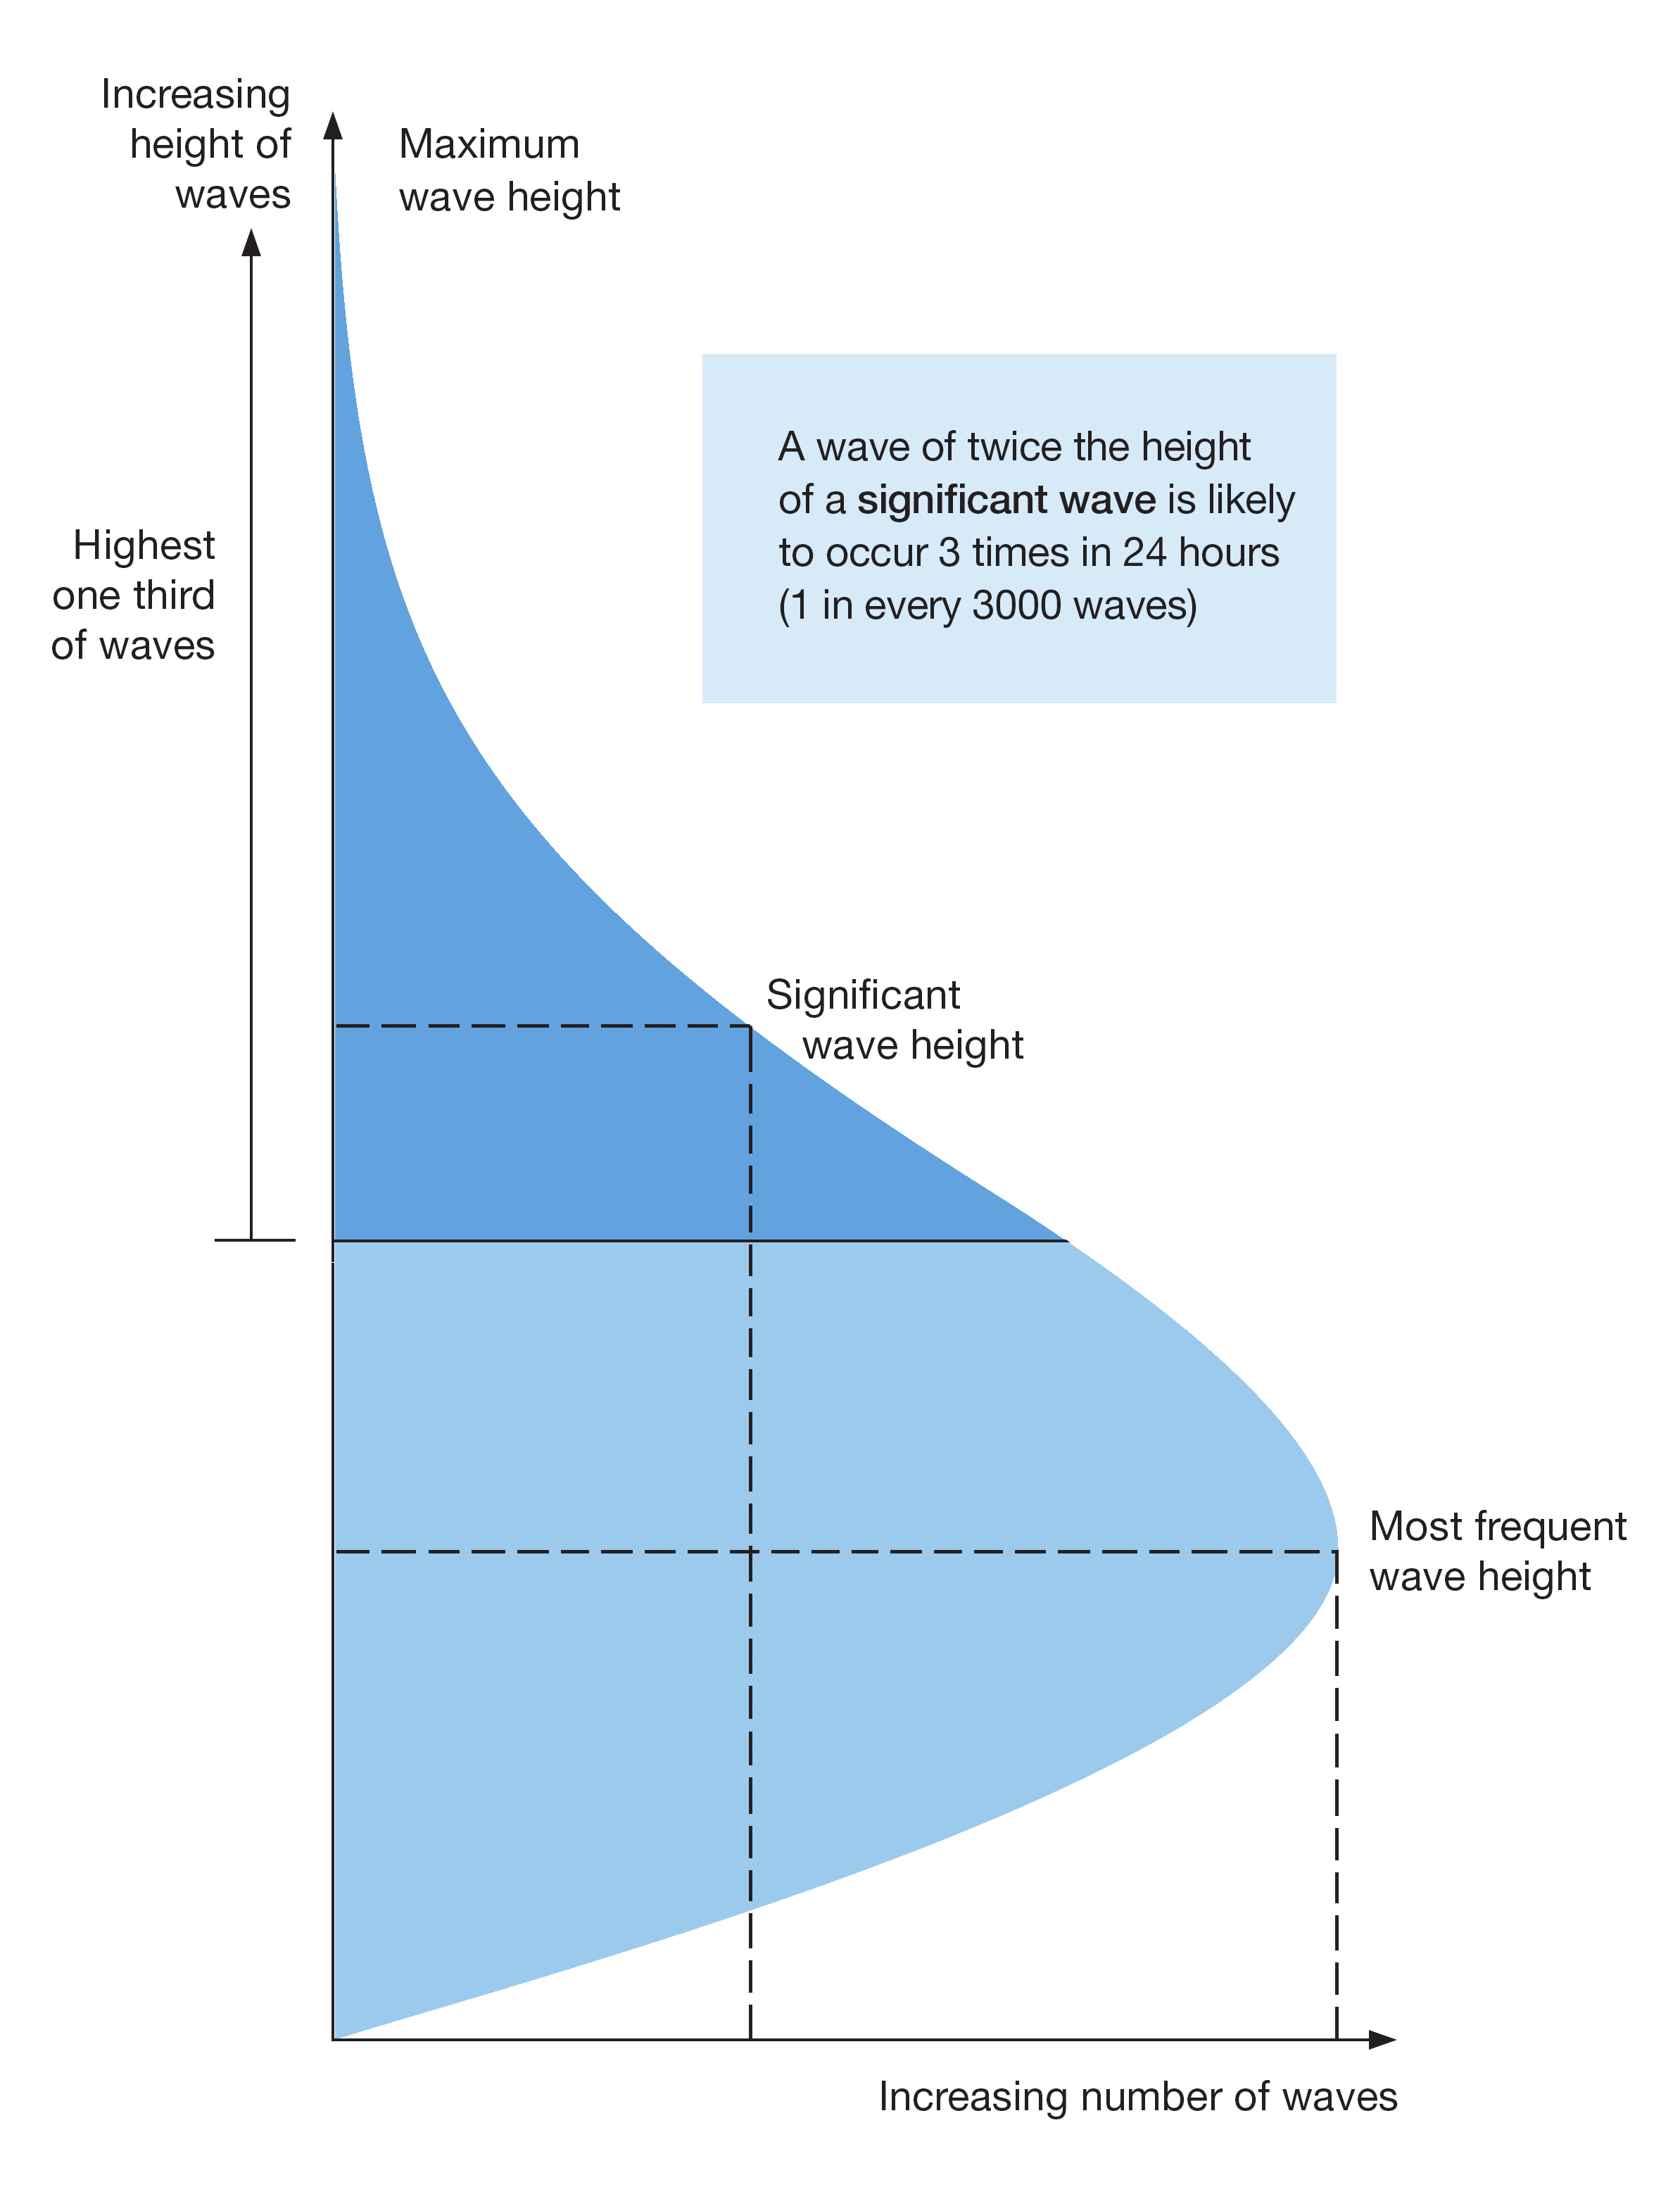 Ruling the waves: How a simple wave height concept can help